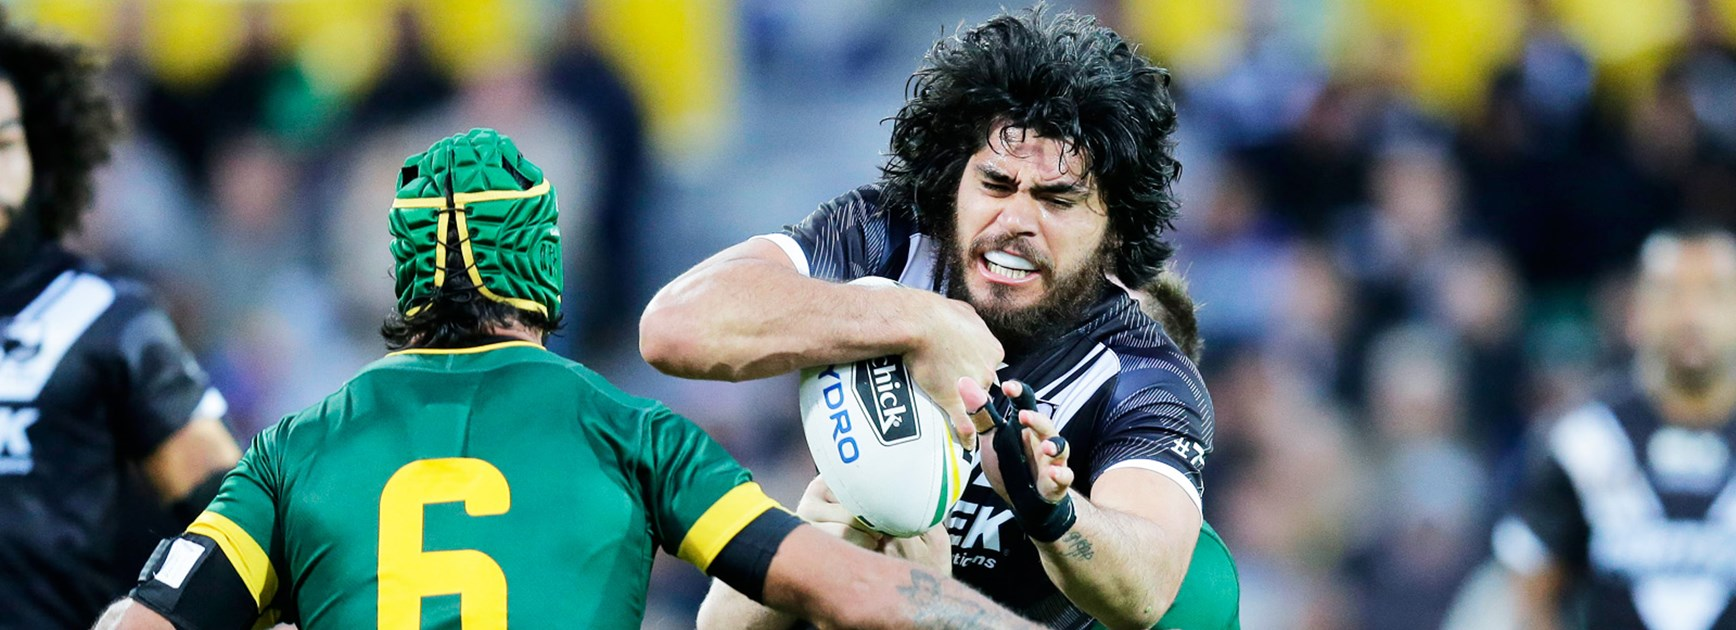 Kiwis star Tohu Harris has signed a four-year deal with the Warriors, starting 2018.